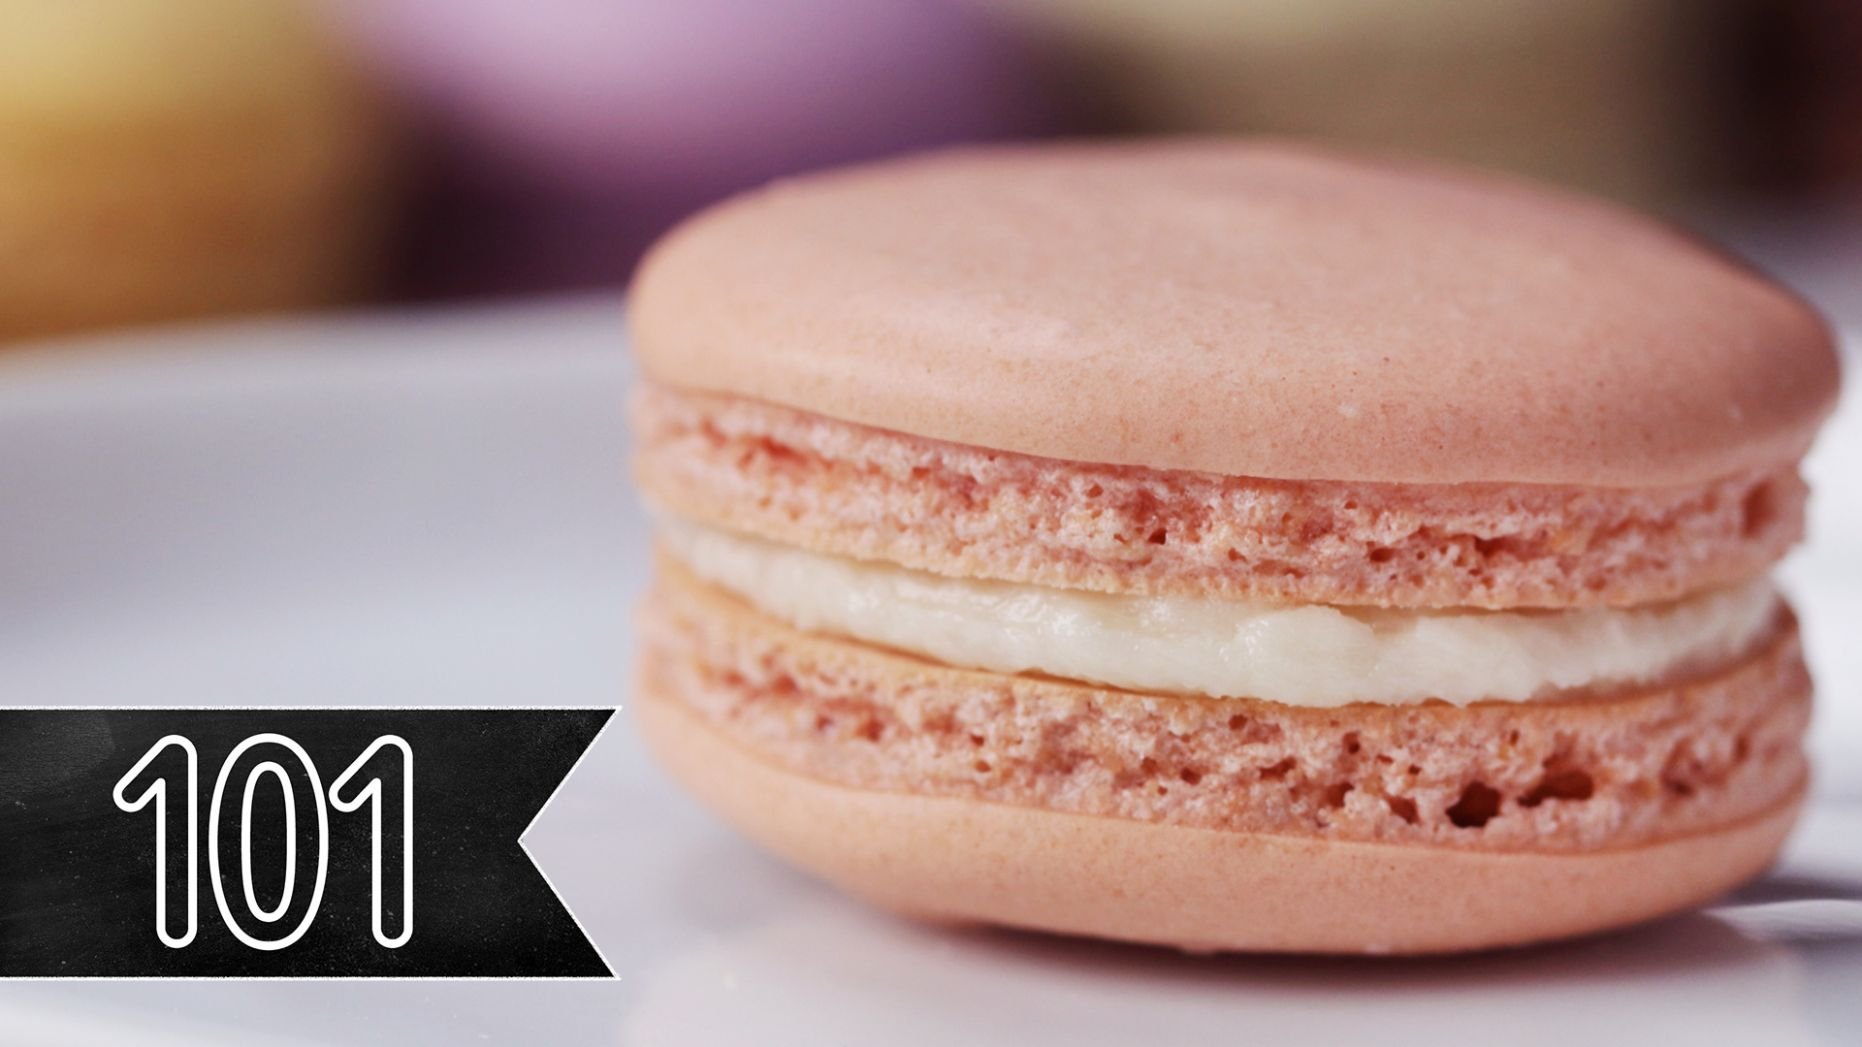 How To Make Macarons Recipe by Tasty